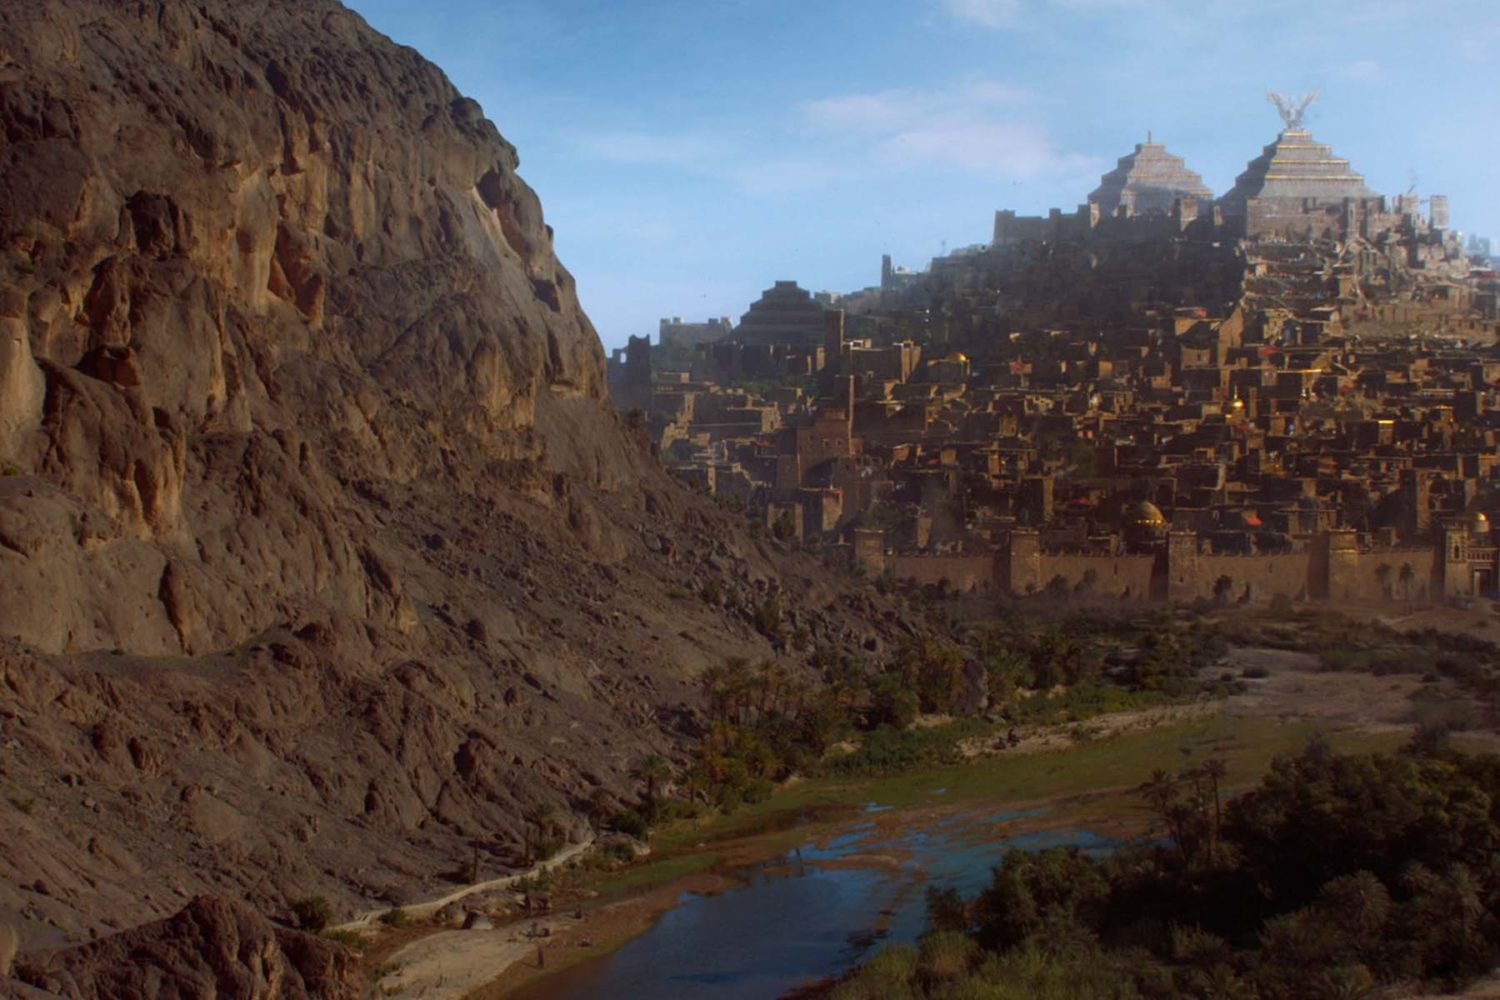 Yunkai Game of thrones Morocco Iktichaf Travel